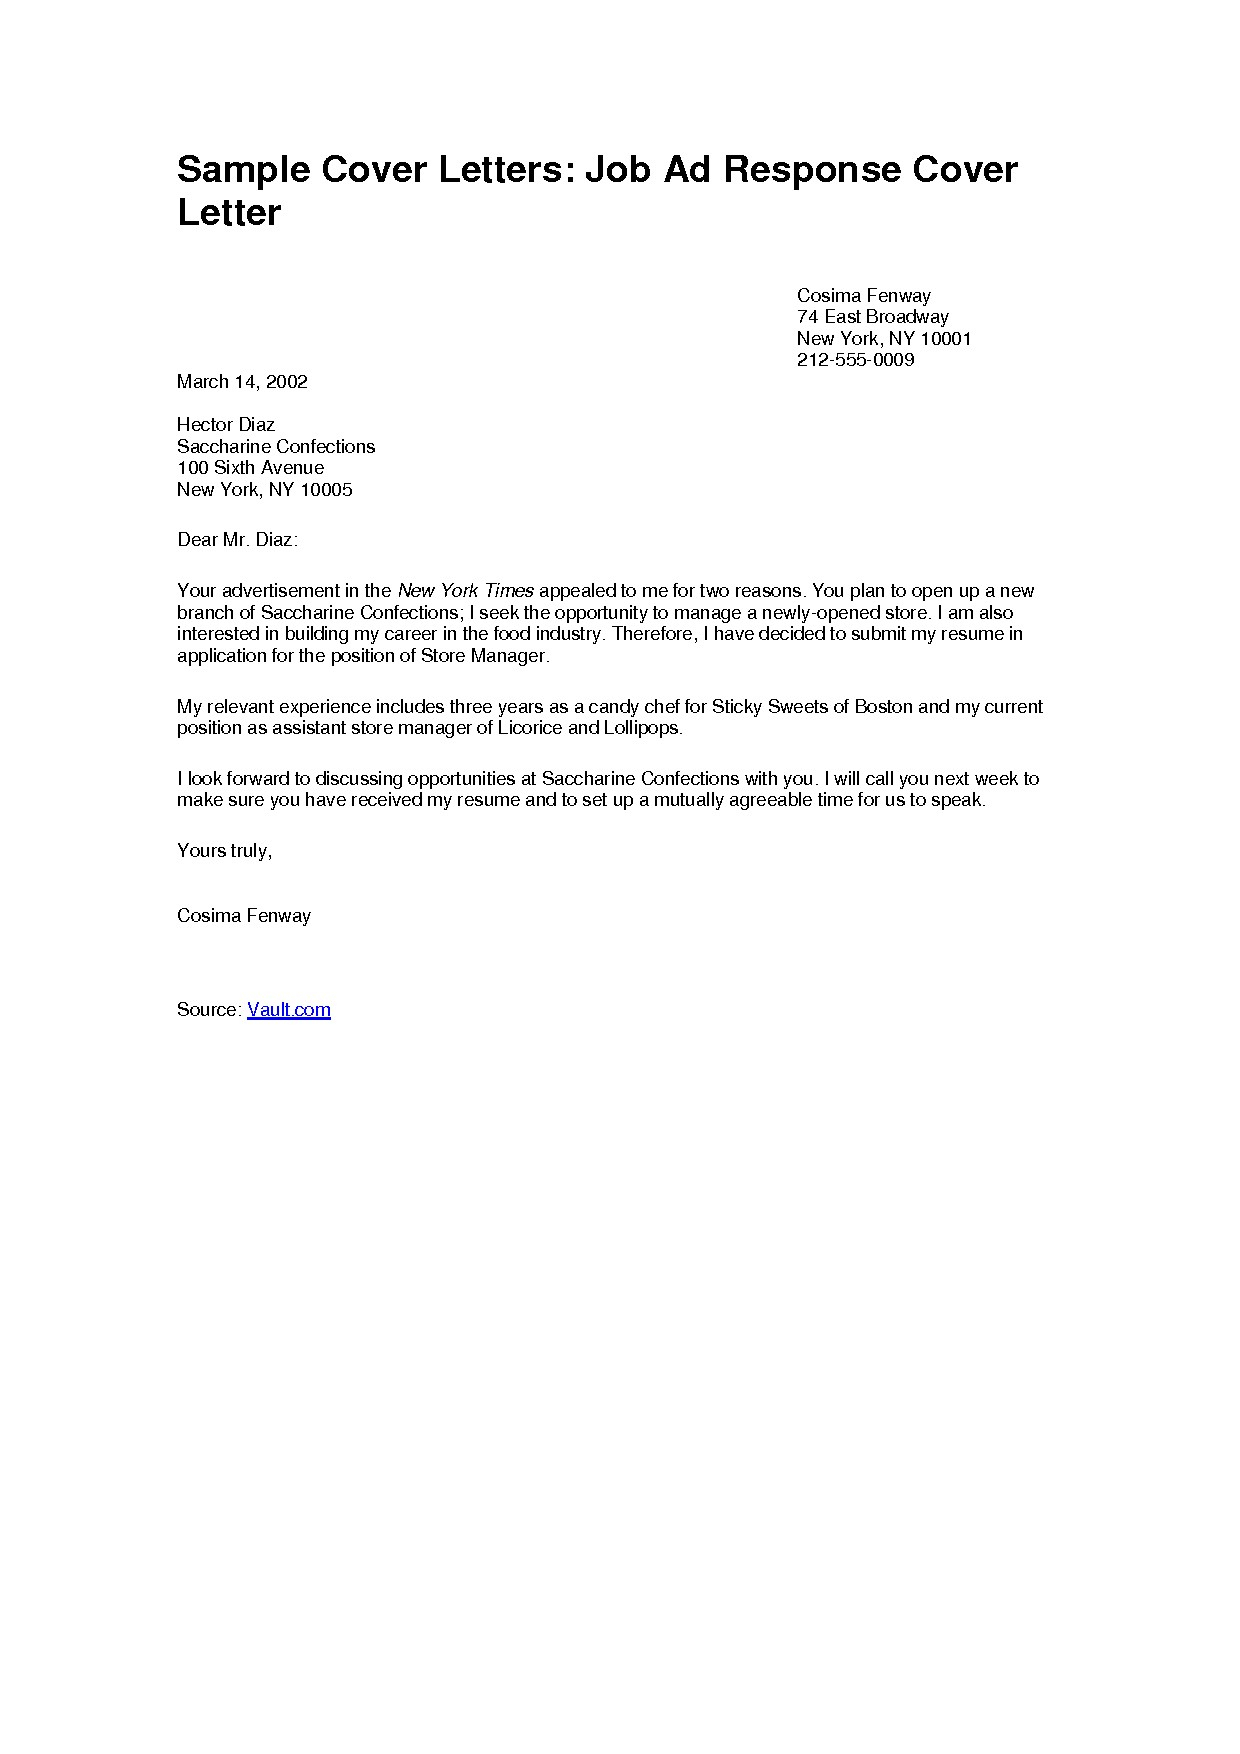 Free Demand Letter Template - Samples Of Job Cover Letters Acurnamedia